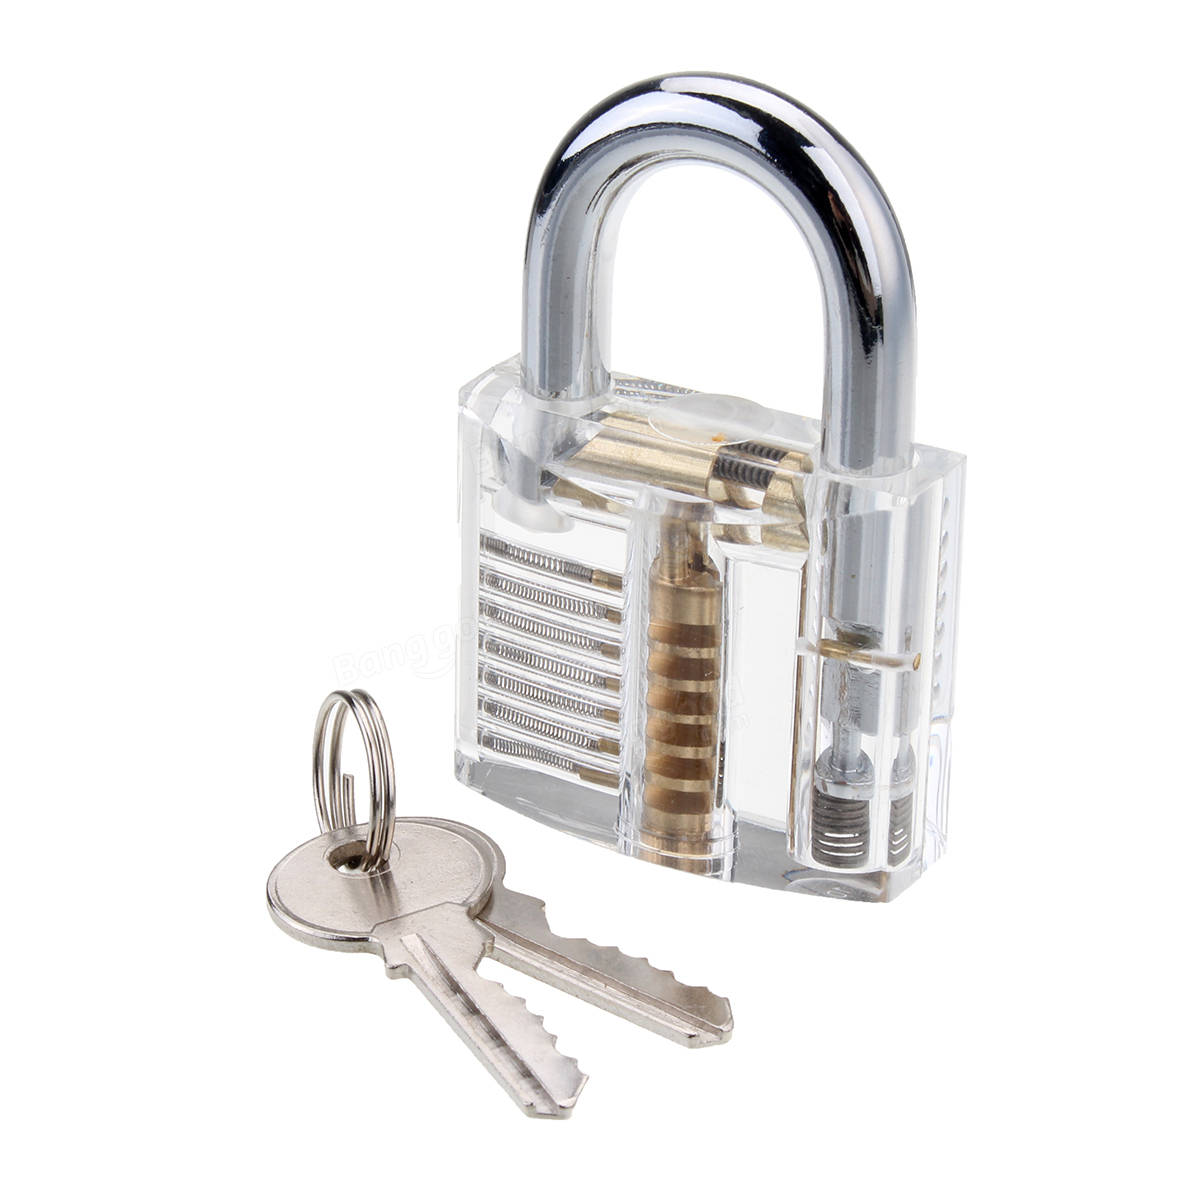 Goso 26-pieces Lock Pick Set for Beginner with Transparent Practice Padlock